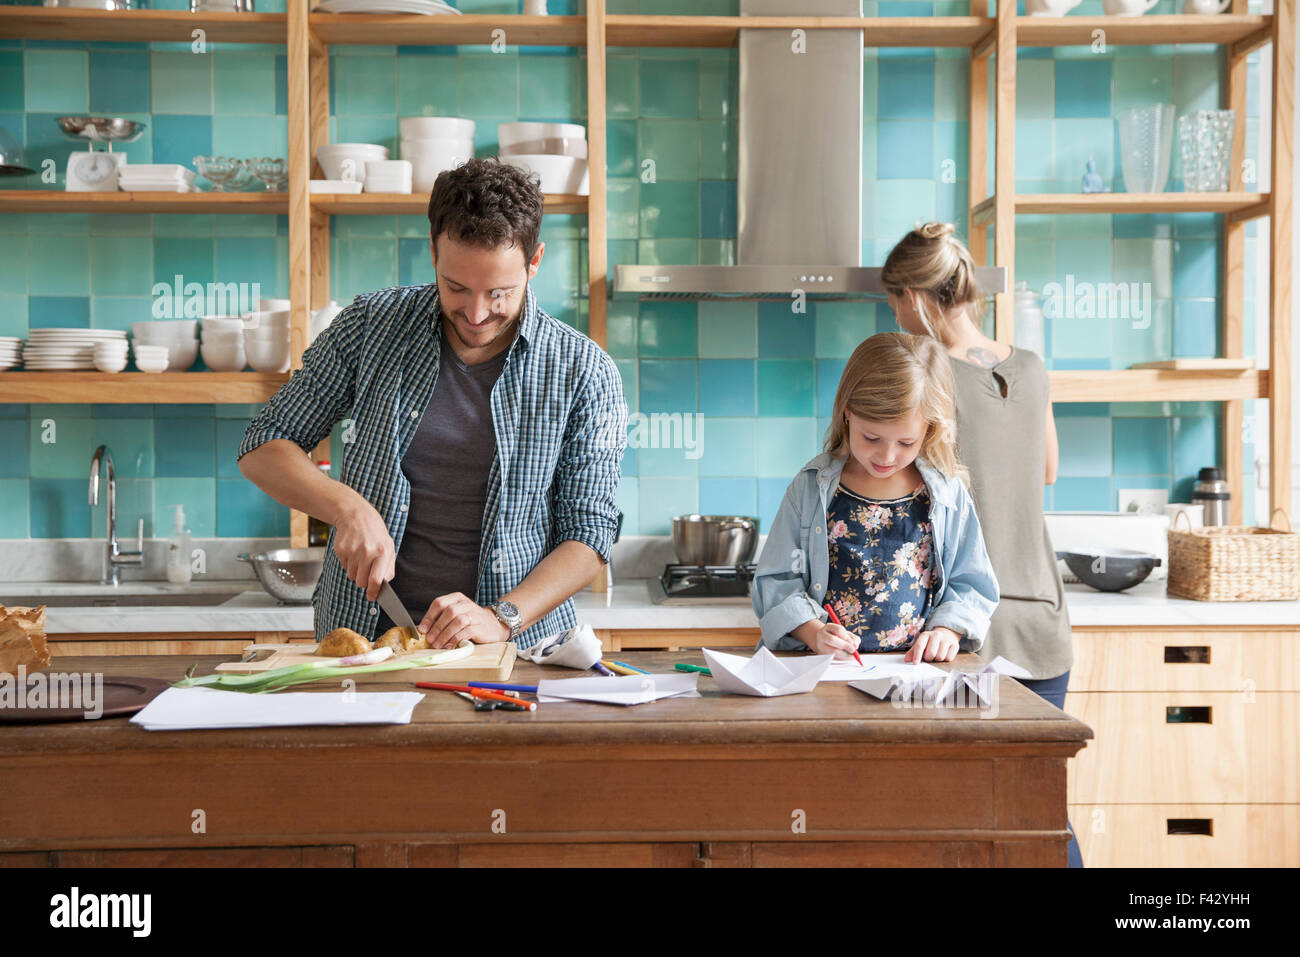 Young daughter drawing ar kitchen counter while parents prepare meal - Stock Image